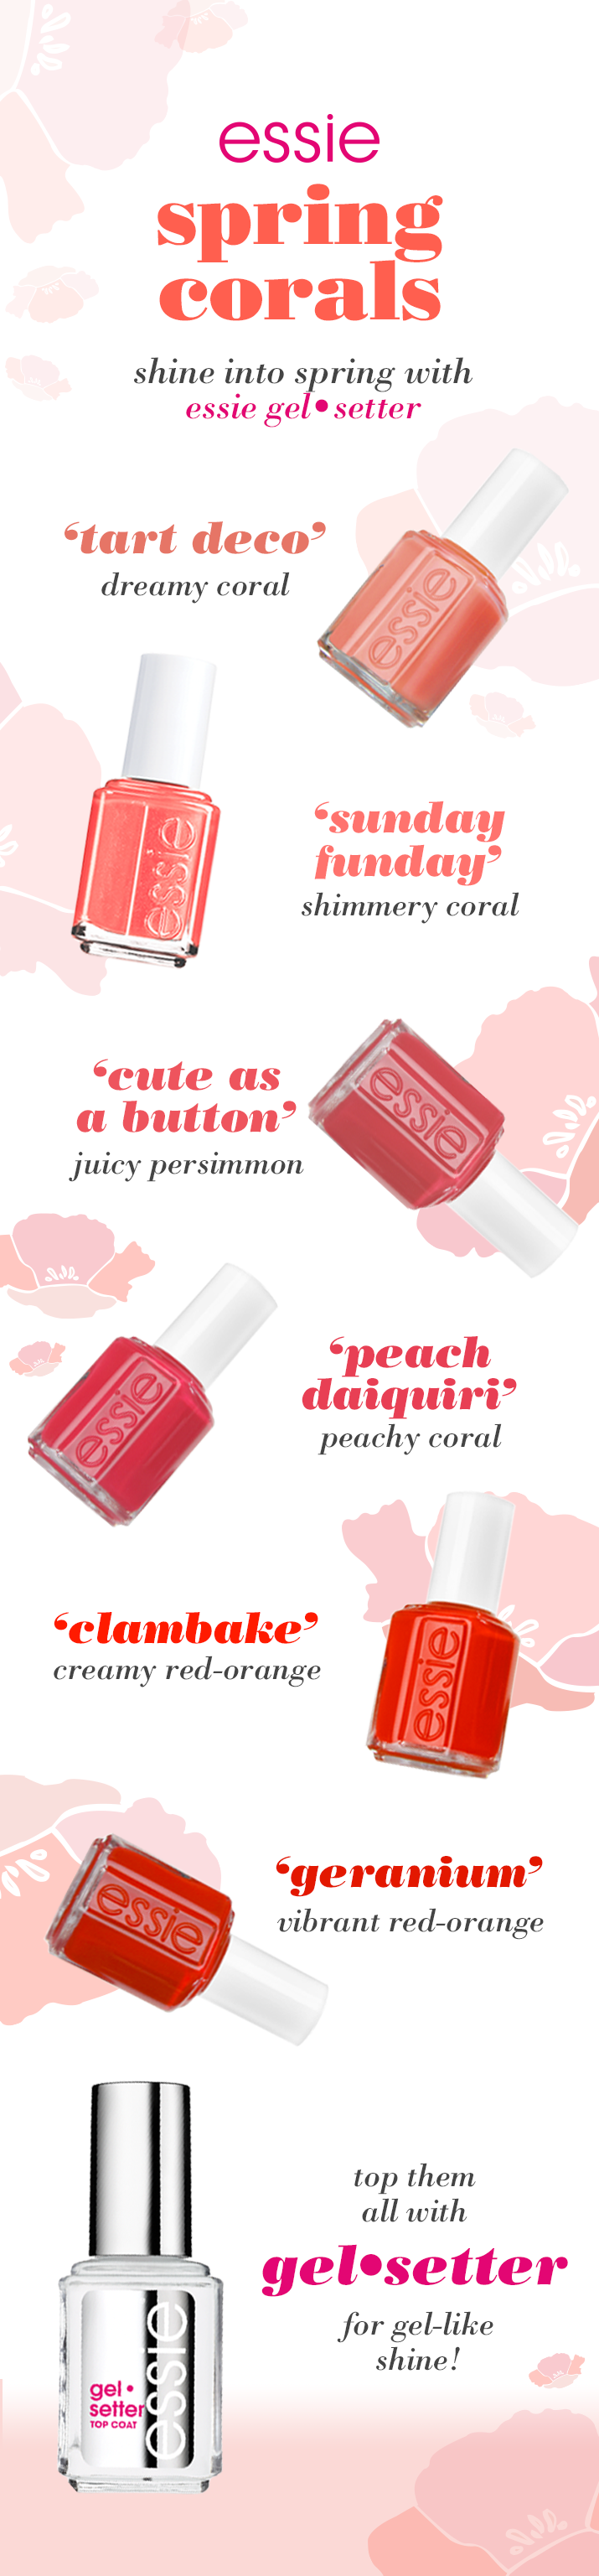 shine into spring with essie gel setter top coat and coral shades ...